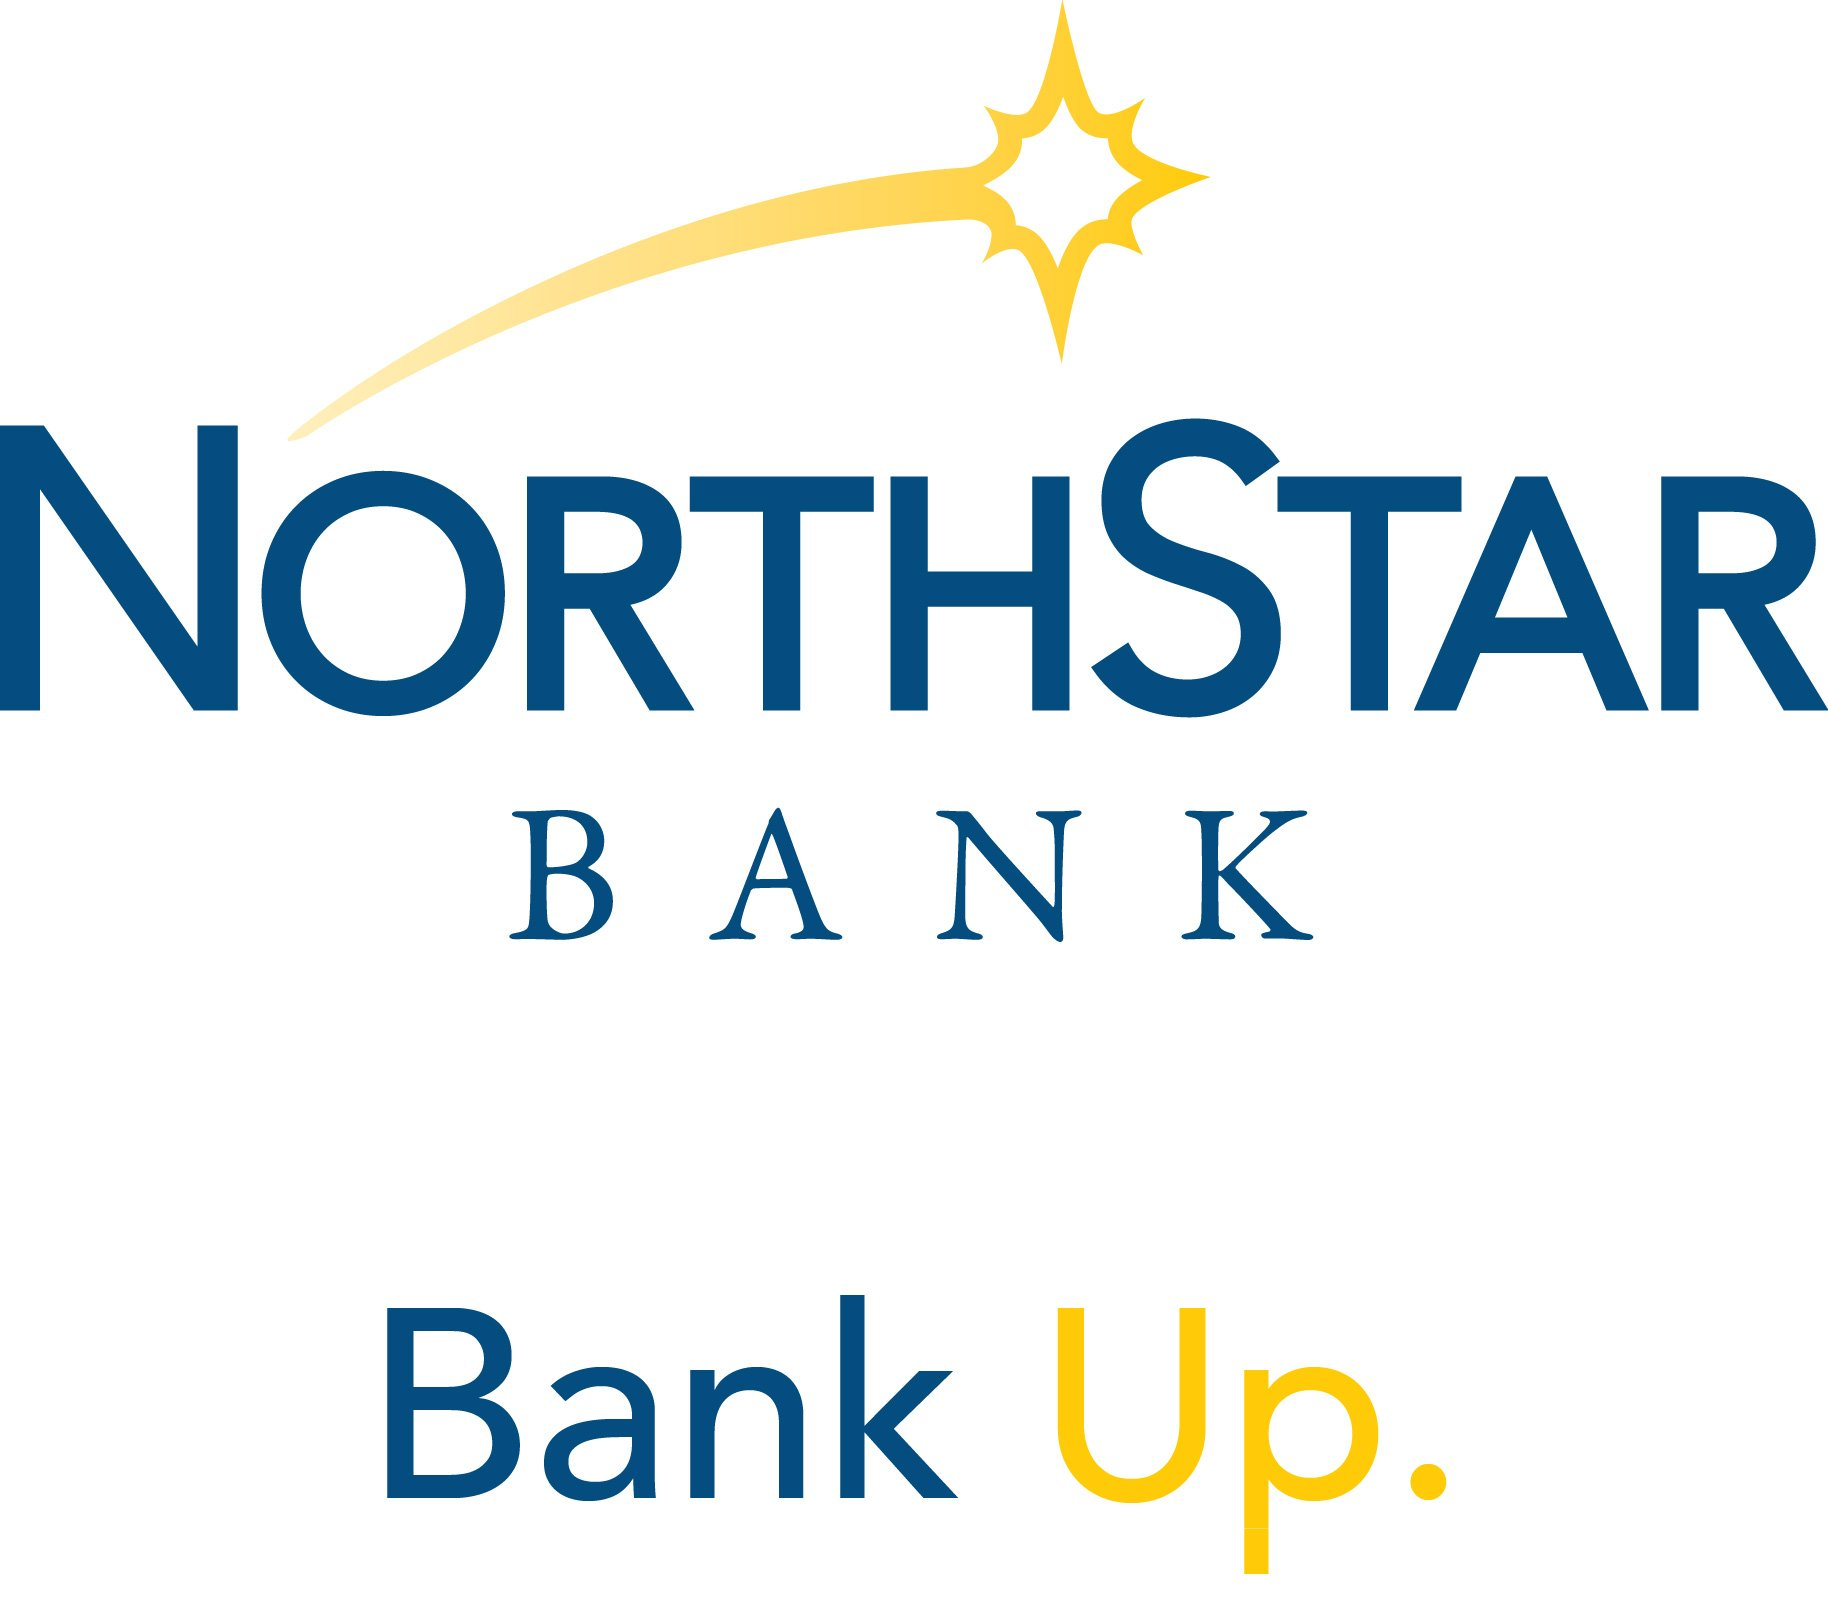 NorthStar Bank logo